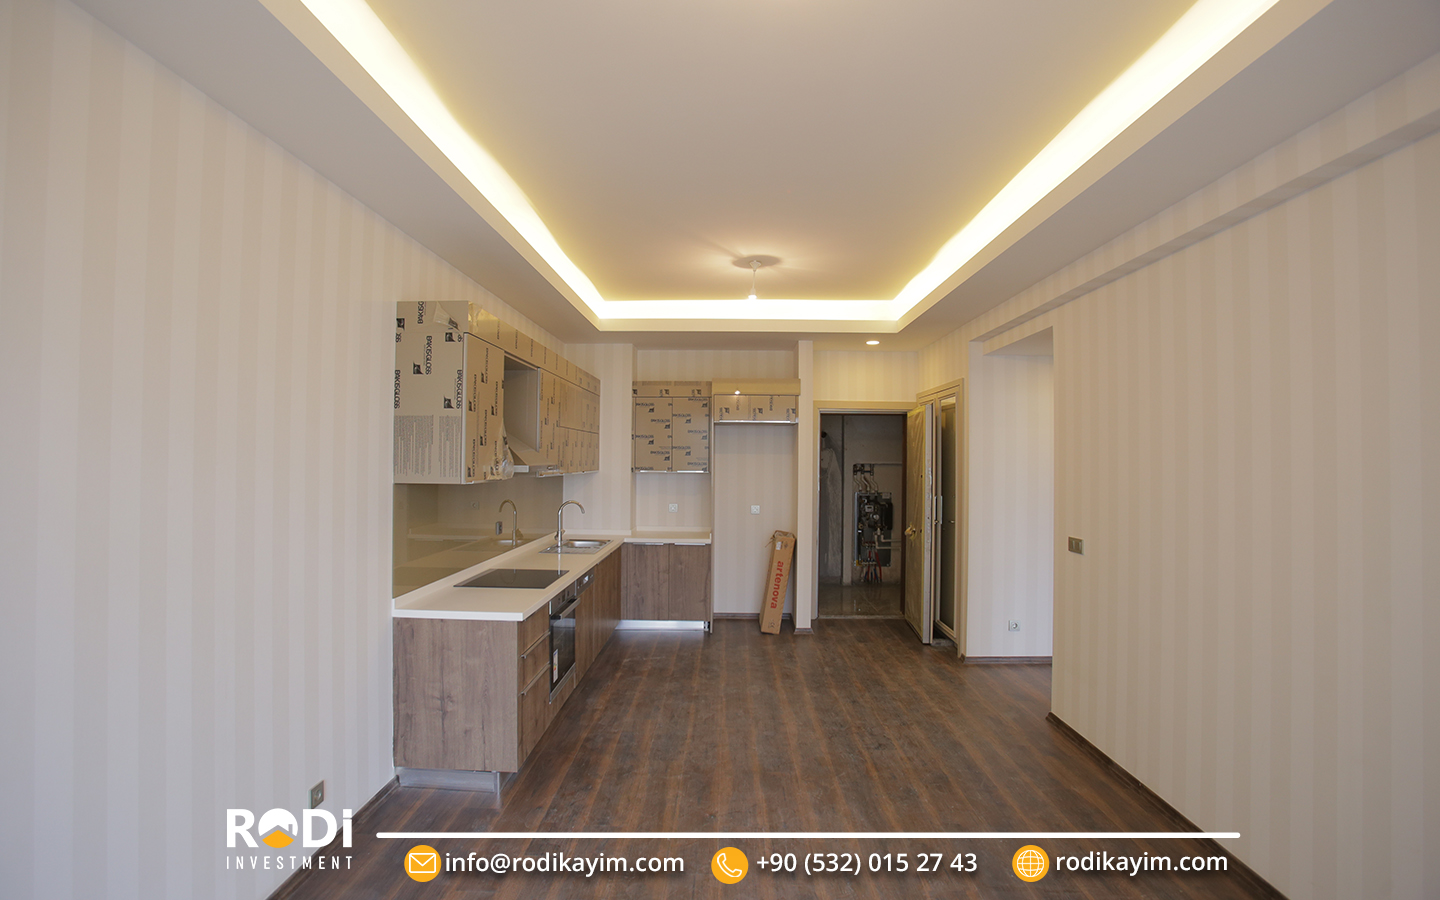 Gunes bahce real estate project in istanbul 5